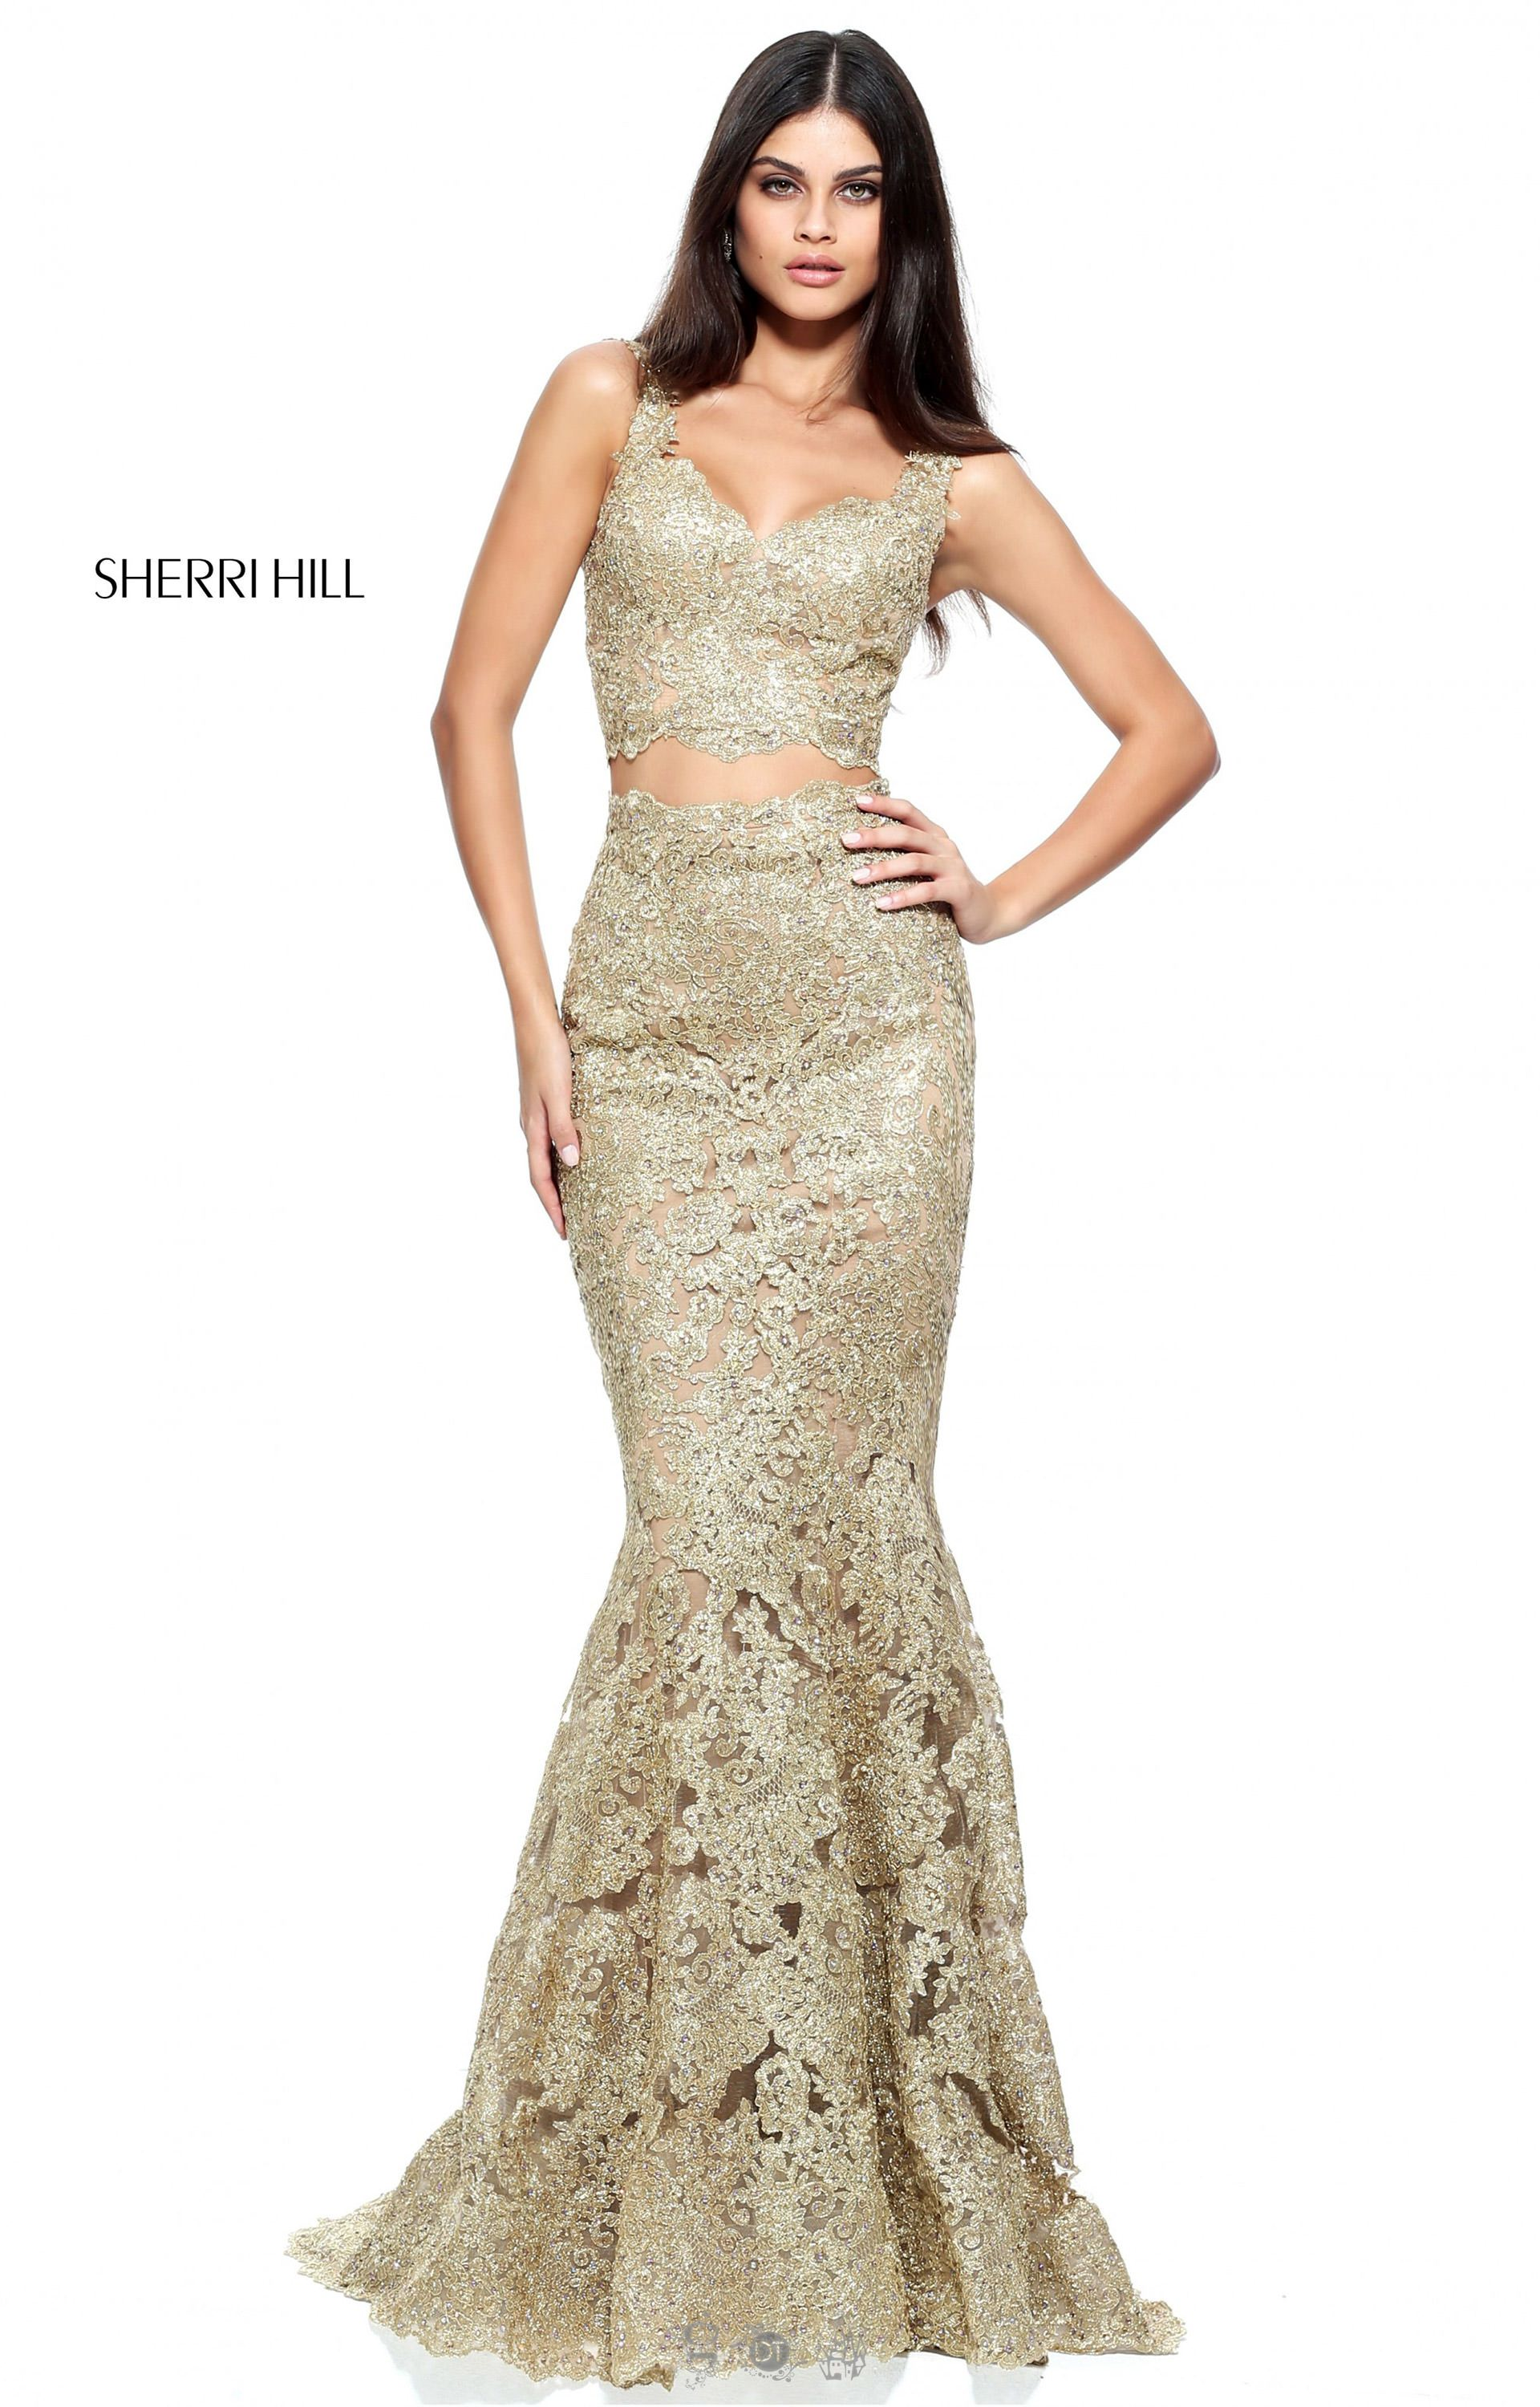 Sherri Hill 51192 Fitted Gold Sherri Hill Two Piece Prom Dress